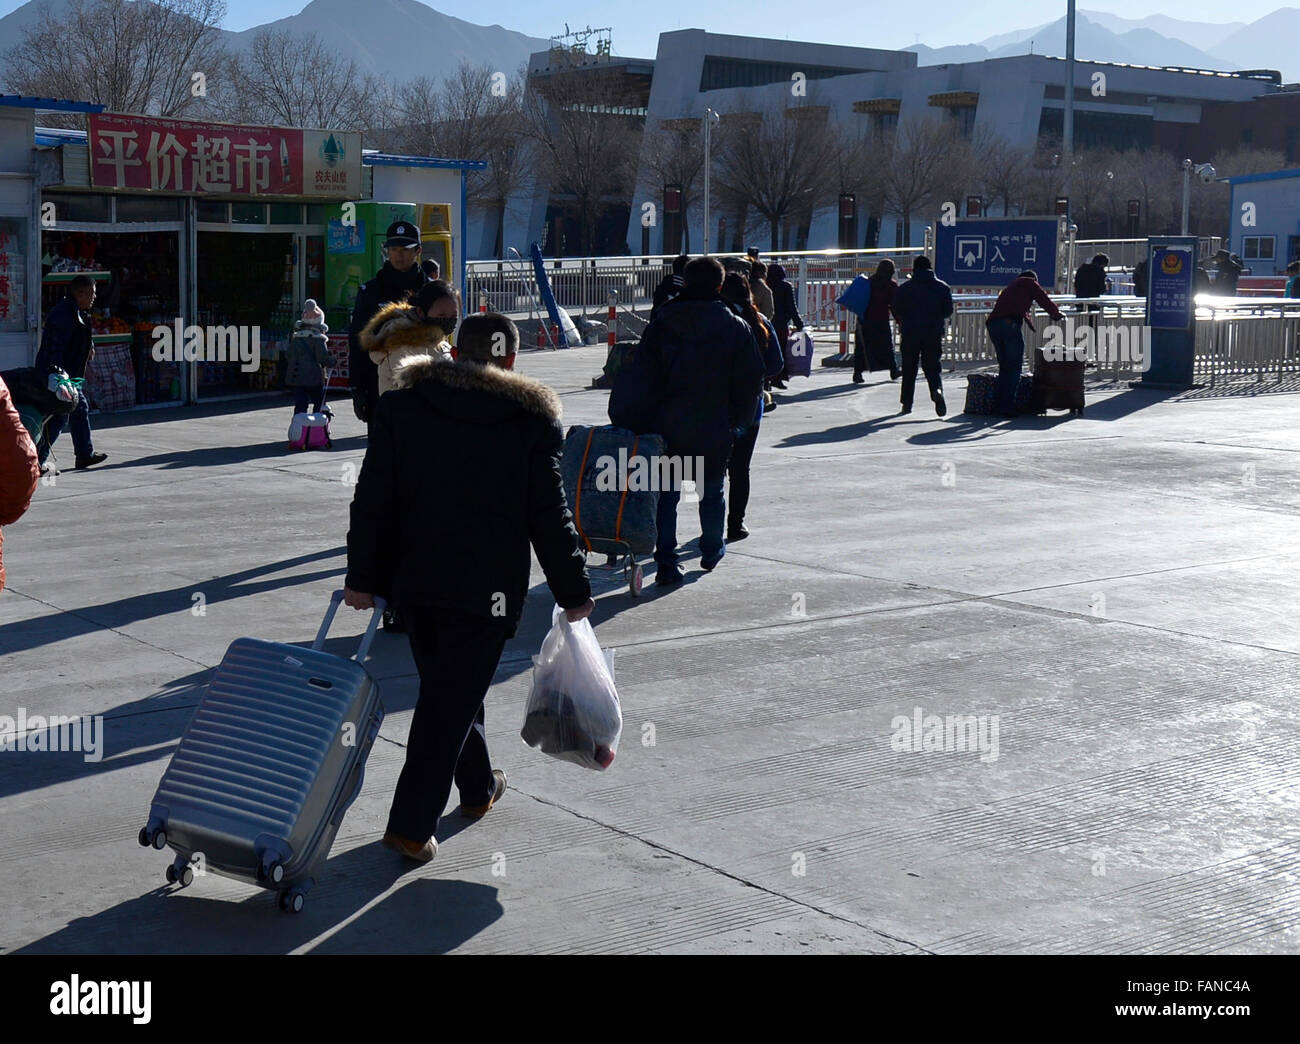 Lhasa, China's Tibet Autonomous Region. 2nd Jan, 2016. Passengers head for a train station in Lhasa, capital - Stock Image